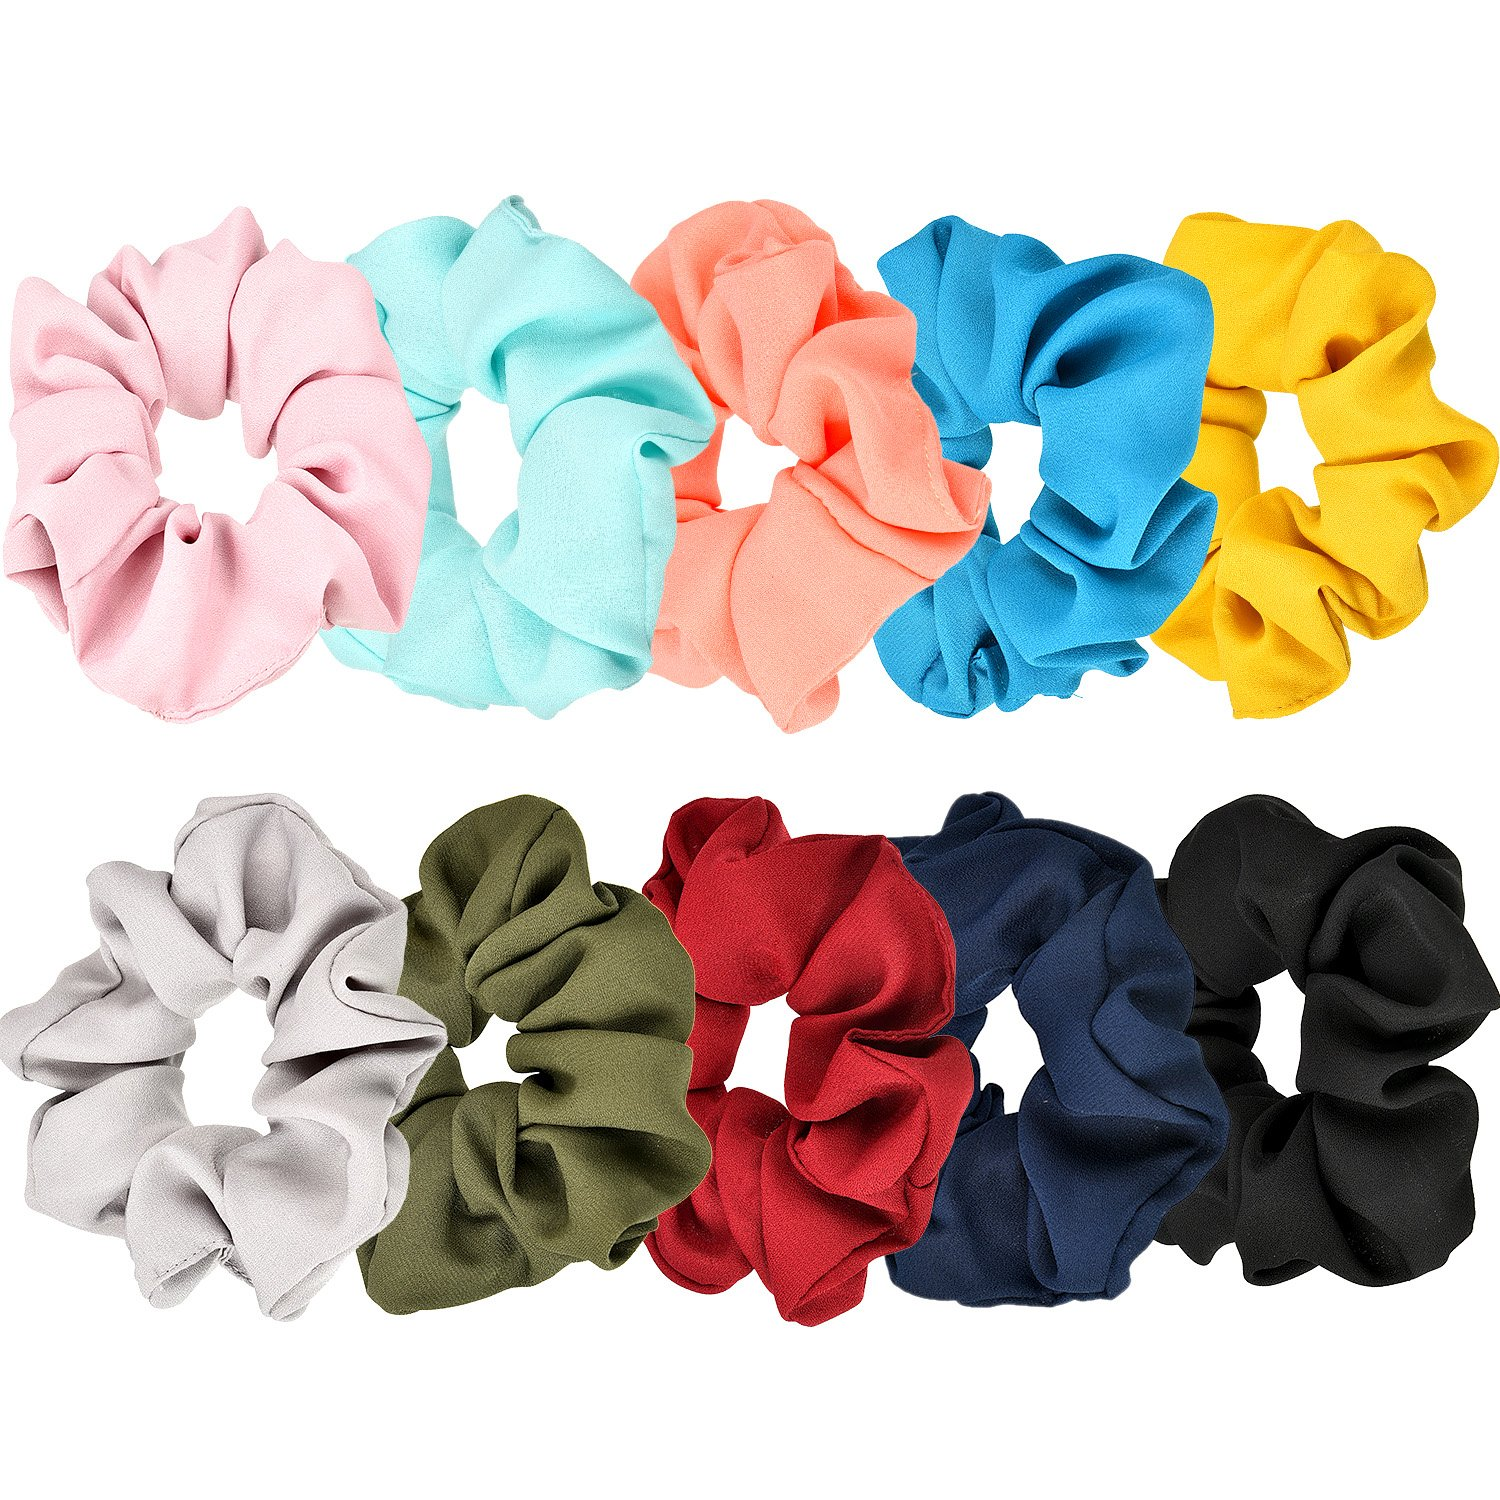 10 Pieces Hair Scrunchies Hair Bobbles Scrunchies Chiffon Flower Hair Bow Elastic Ponytail Holder for Women and Girls, 10 Colors Jovitec